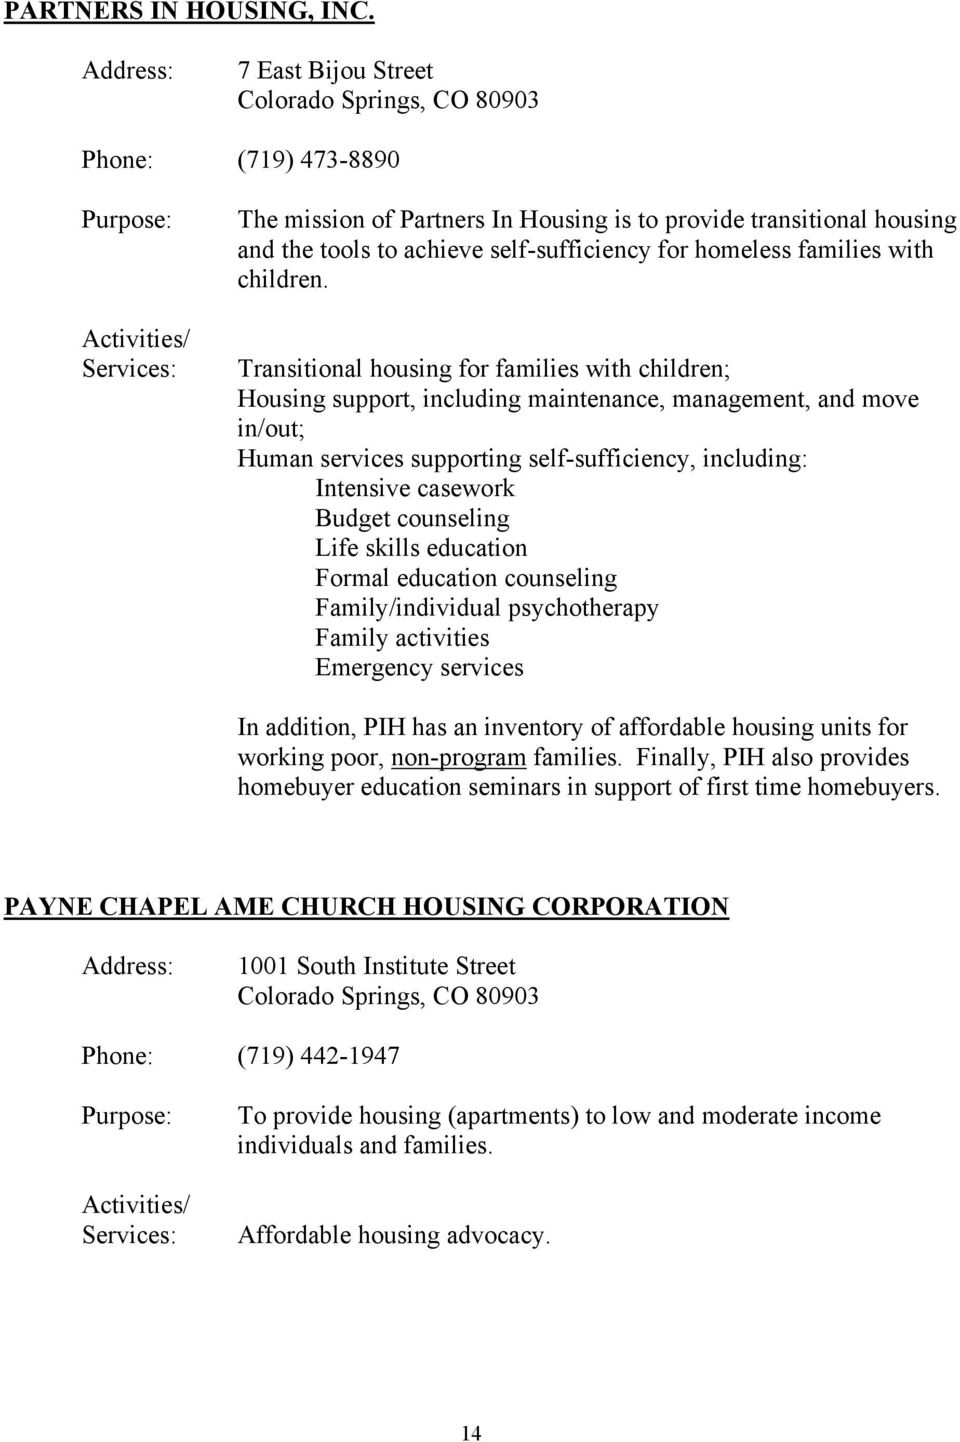 Transitional housing for families with children; Housing support, including maintenance, management, and move in/out; Human services supporting self-sufficiency, including: Intensive casework Budget